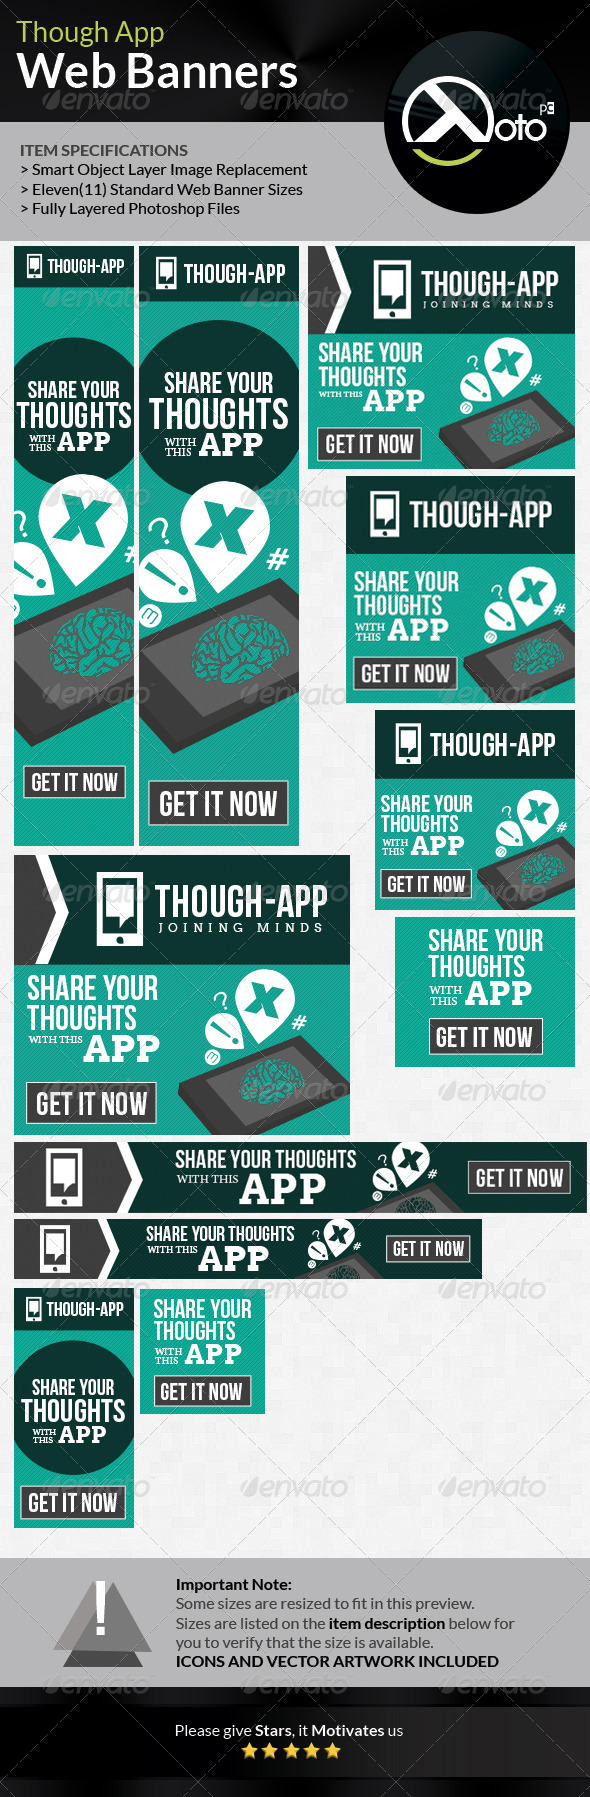 GraphicRiver Though App Idea Cloud Web Banners 7202478